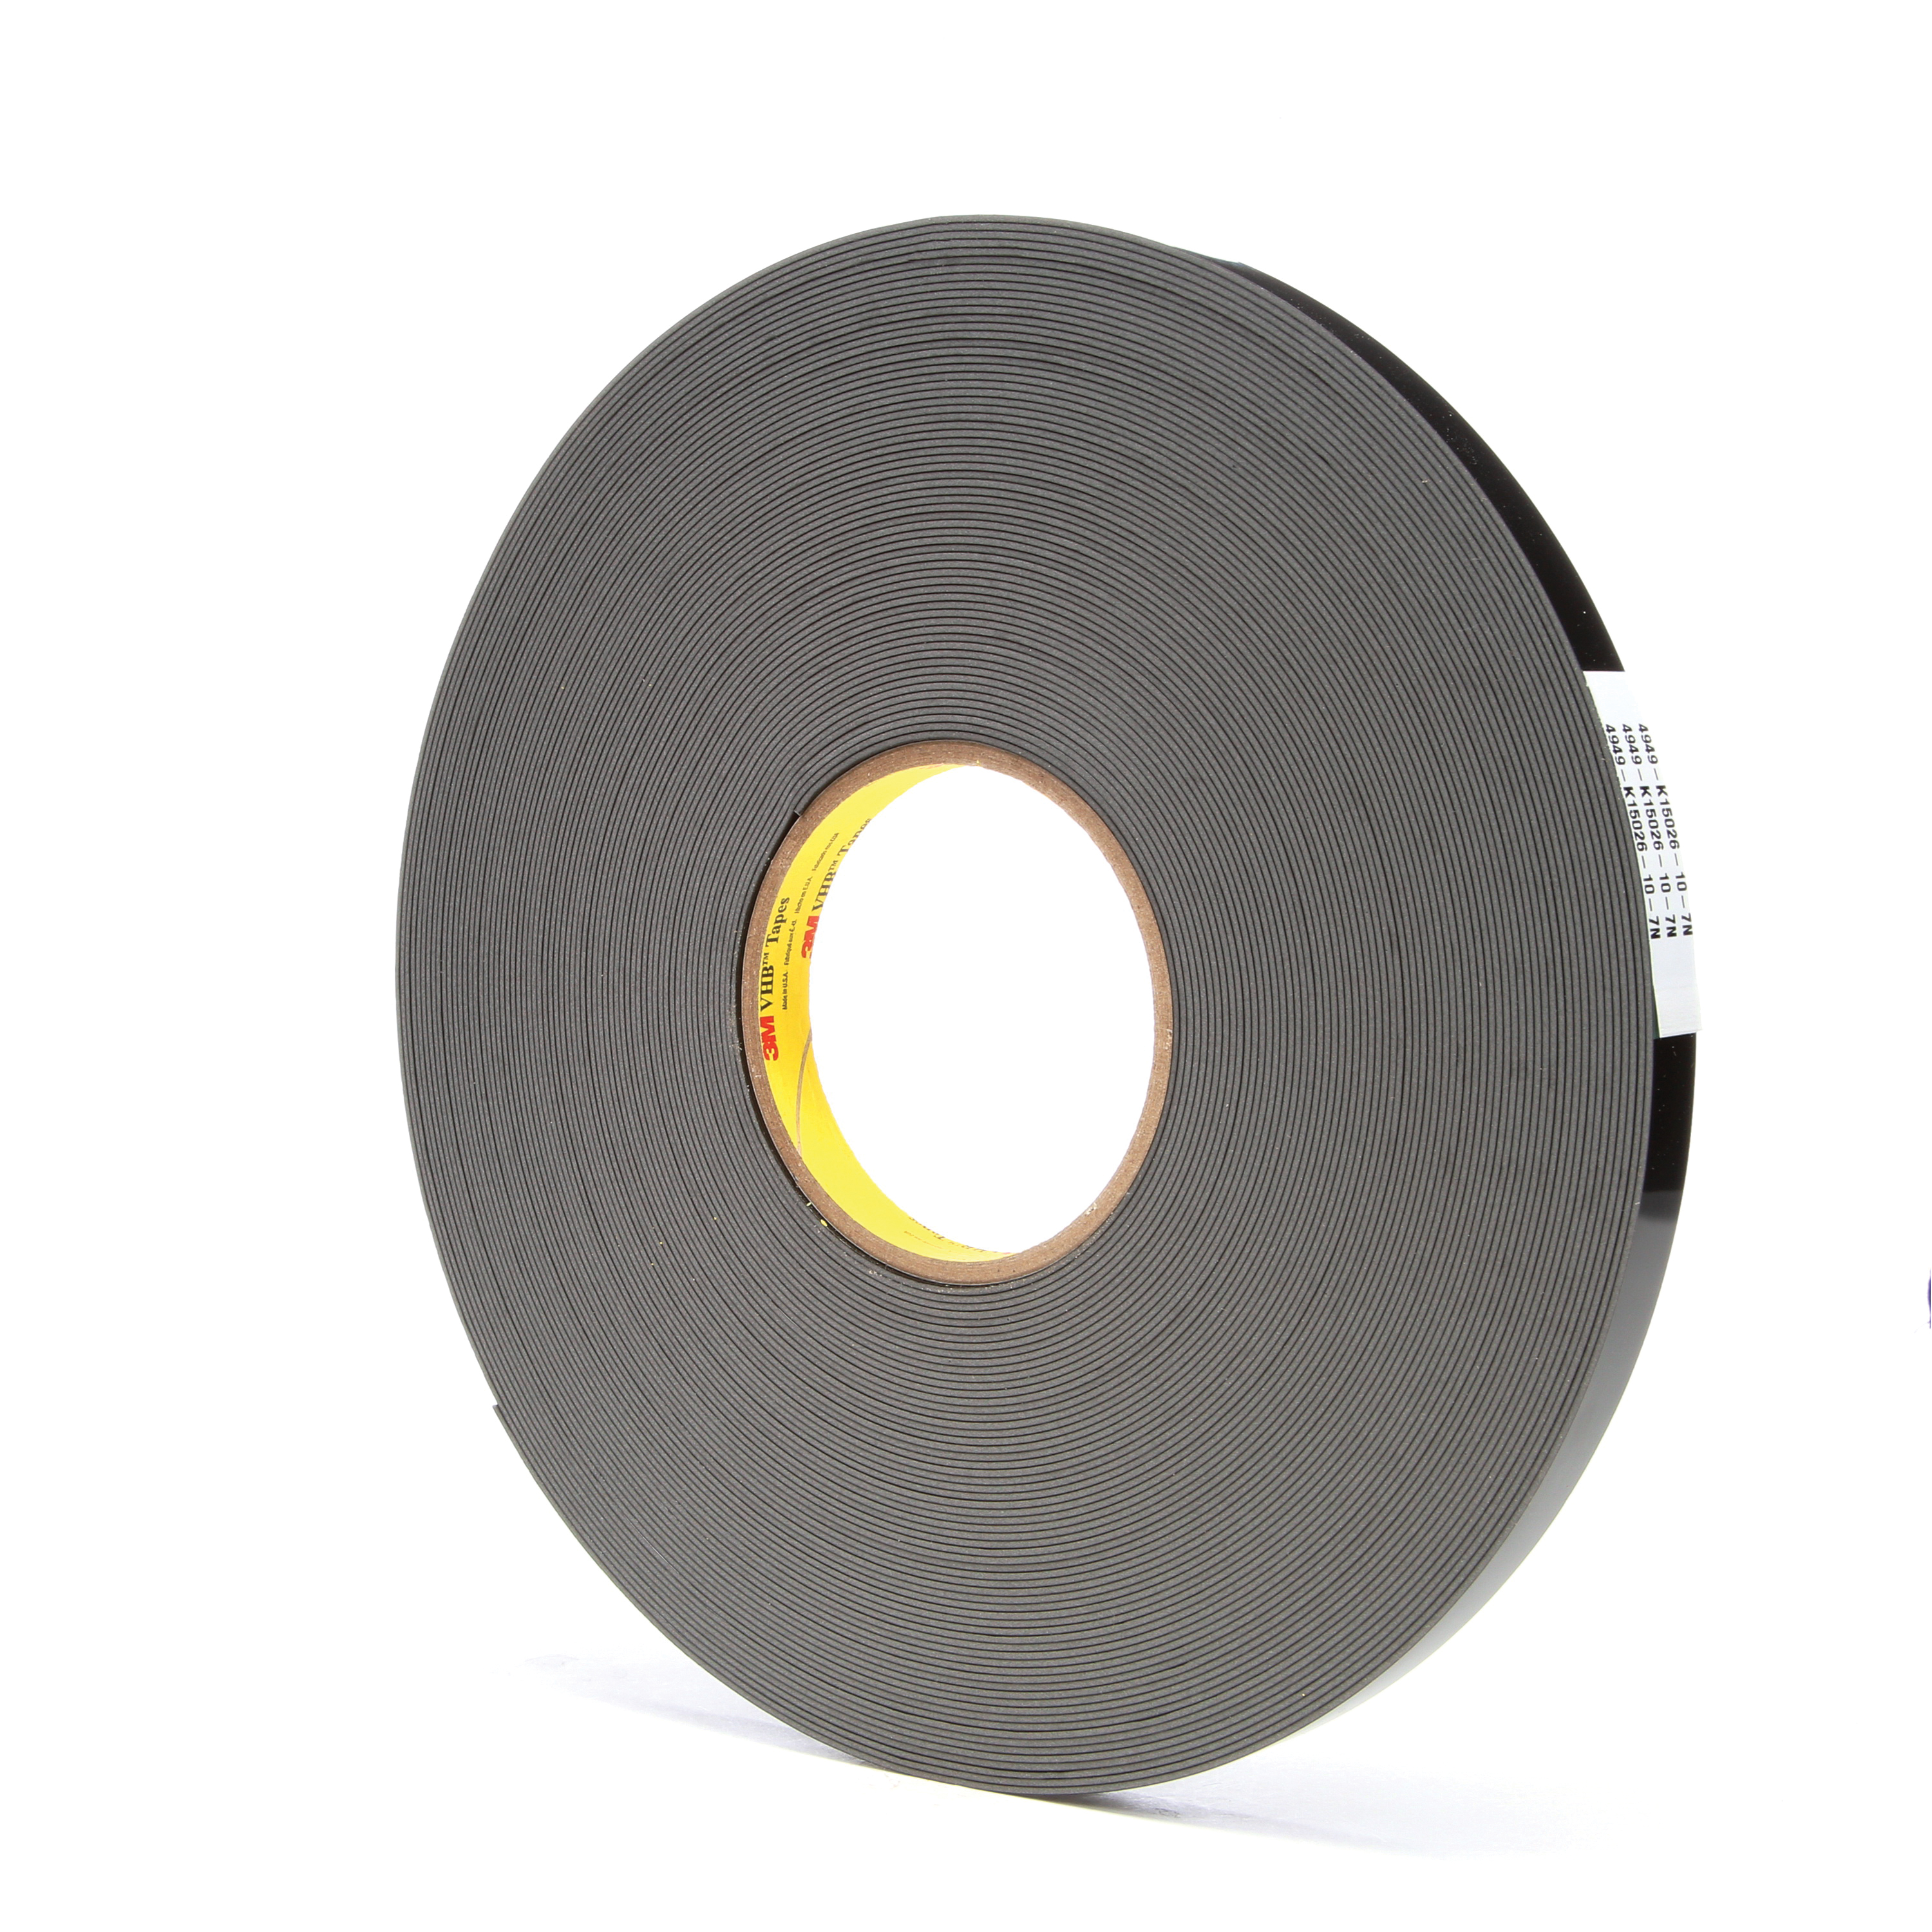 3M™ VHB™ 021200-67490 High Strength Double Sided Bonding Tape, 36 yd L x 1/2 in W, 0.045 in THK, General Purpose Acrylic Adhesive, Acrylic Foam Backing, Black